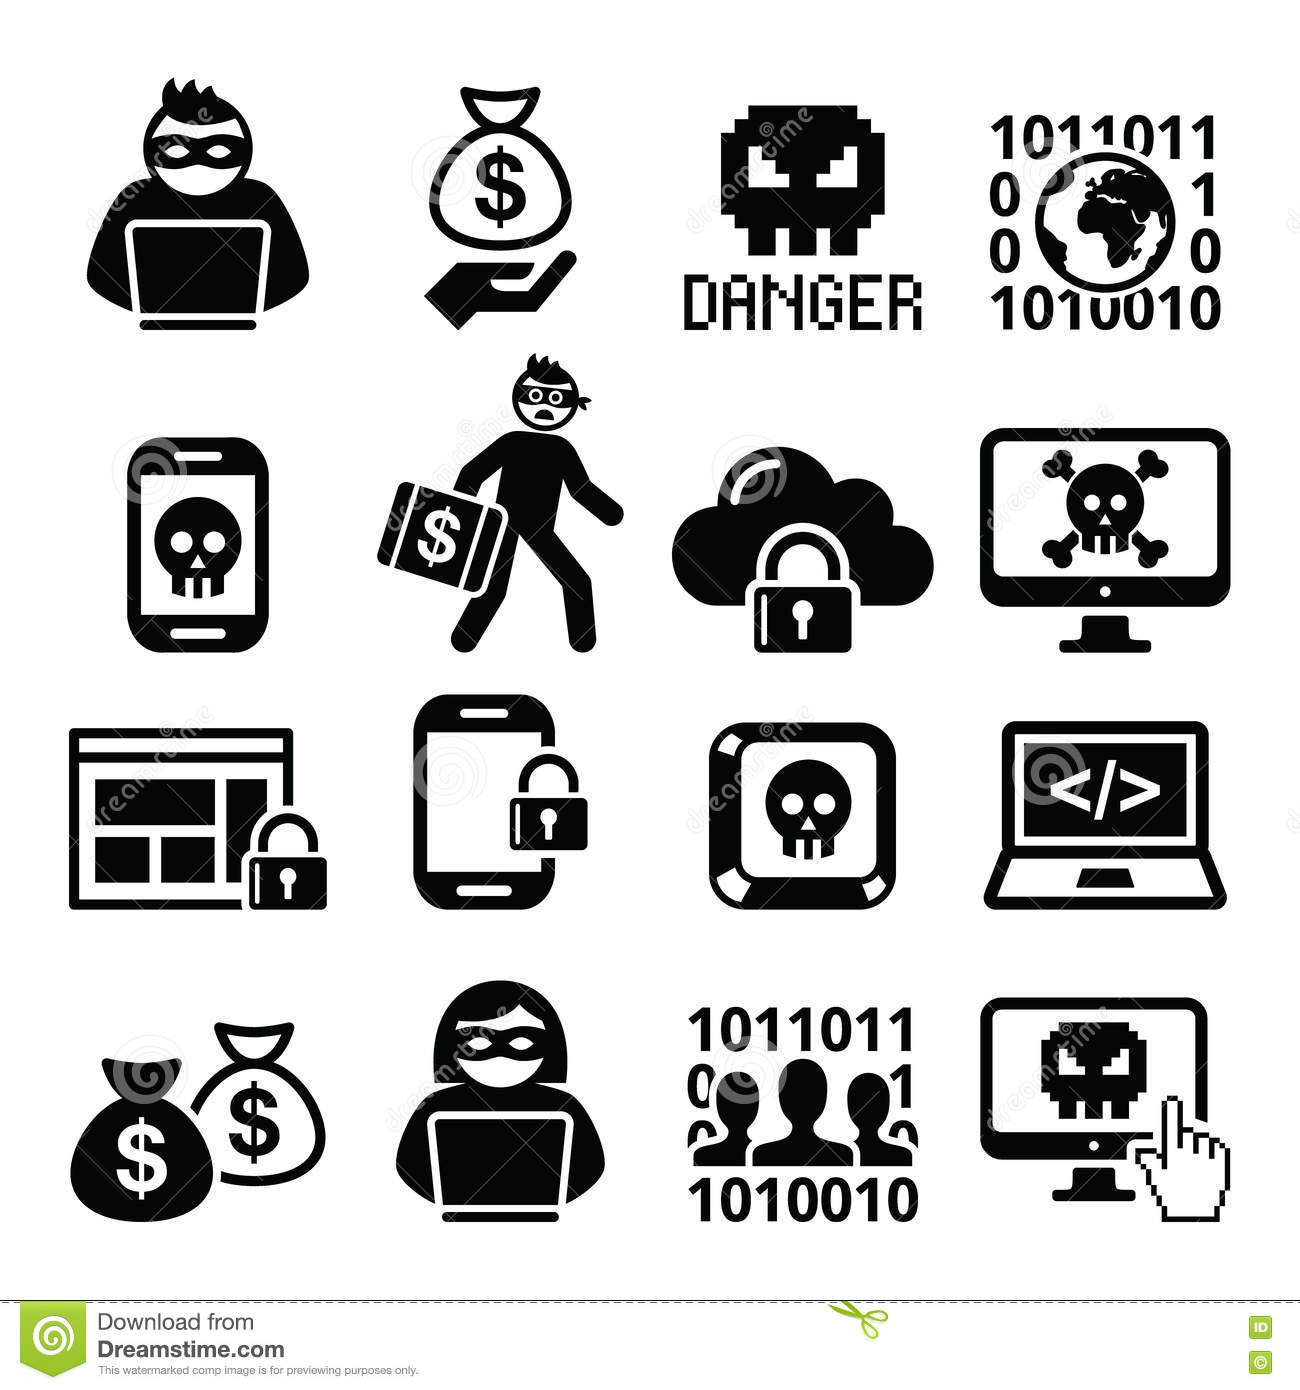 hacker icons in black and white royalty